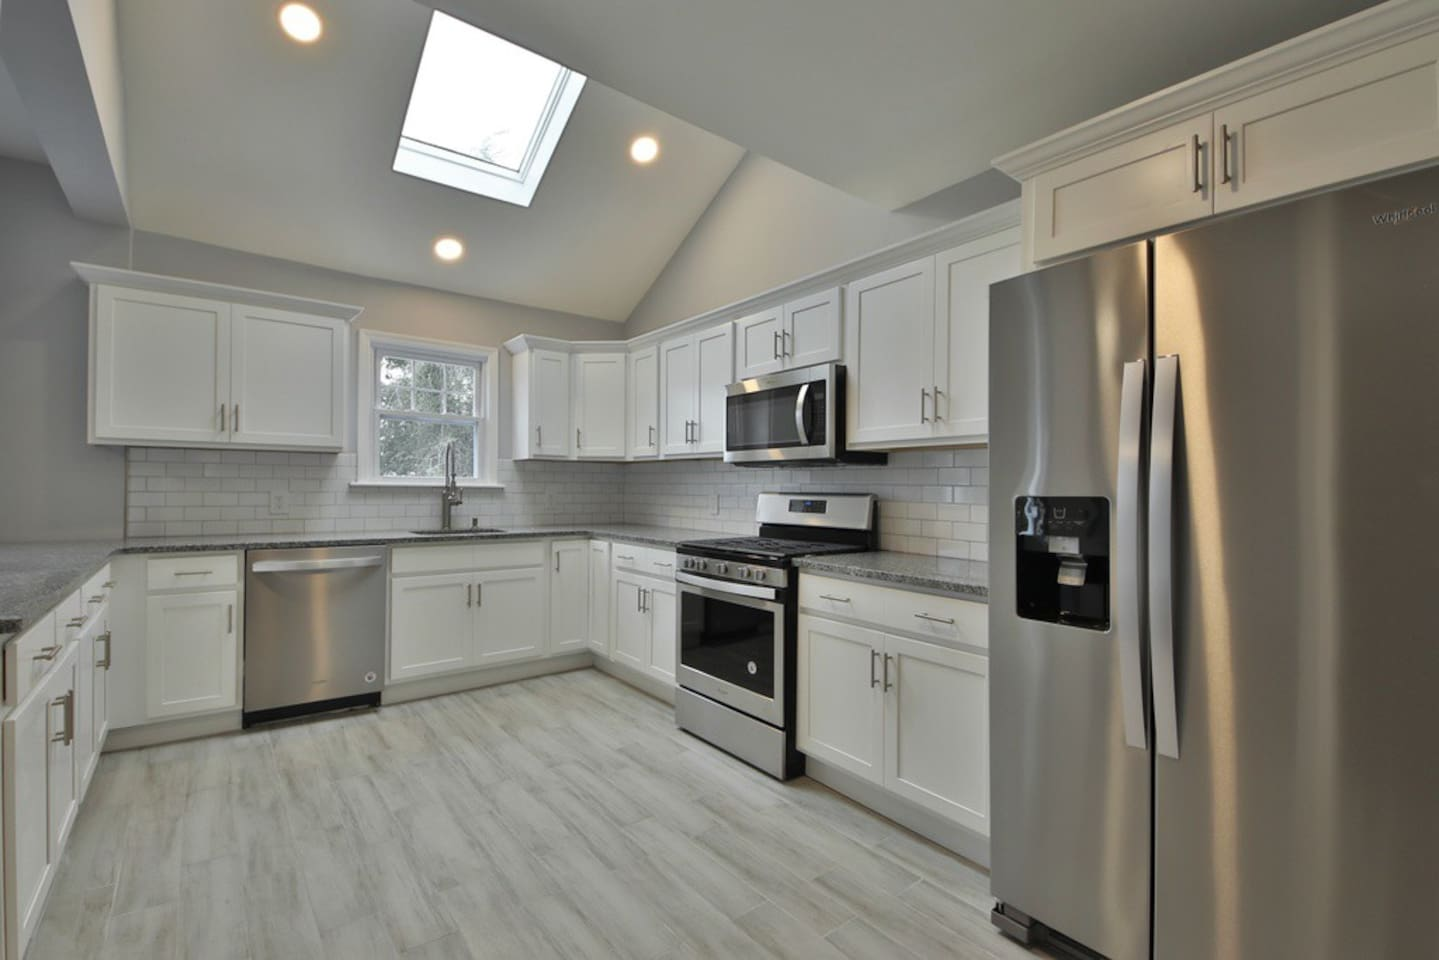 KITCHEN has everything you need ,dishwasher,filtered water fridge ,new appliances, everything is NEW (1/19)